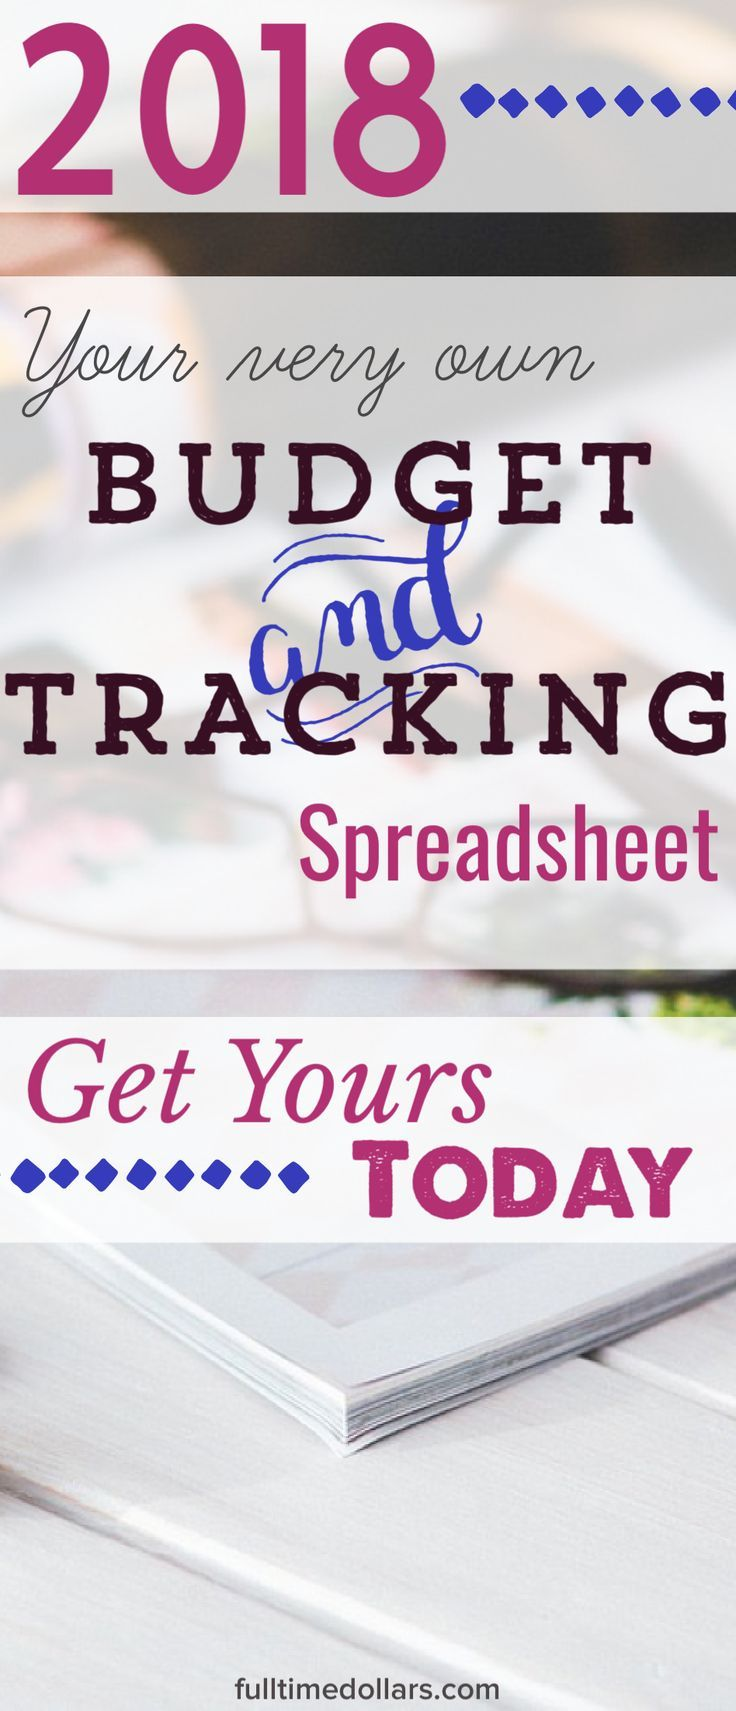 budget tracking spreadsheet financial planning personal finance